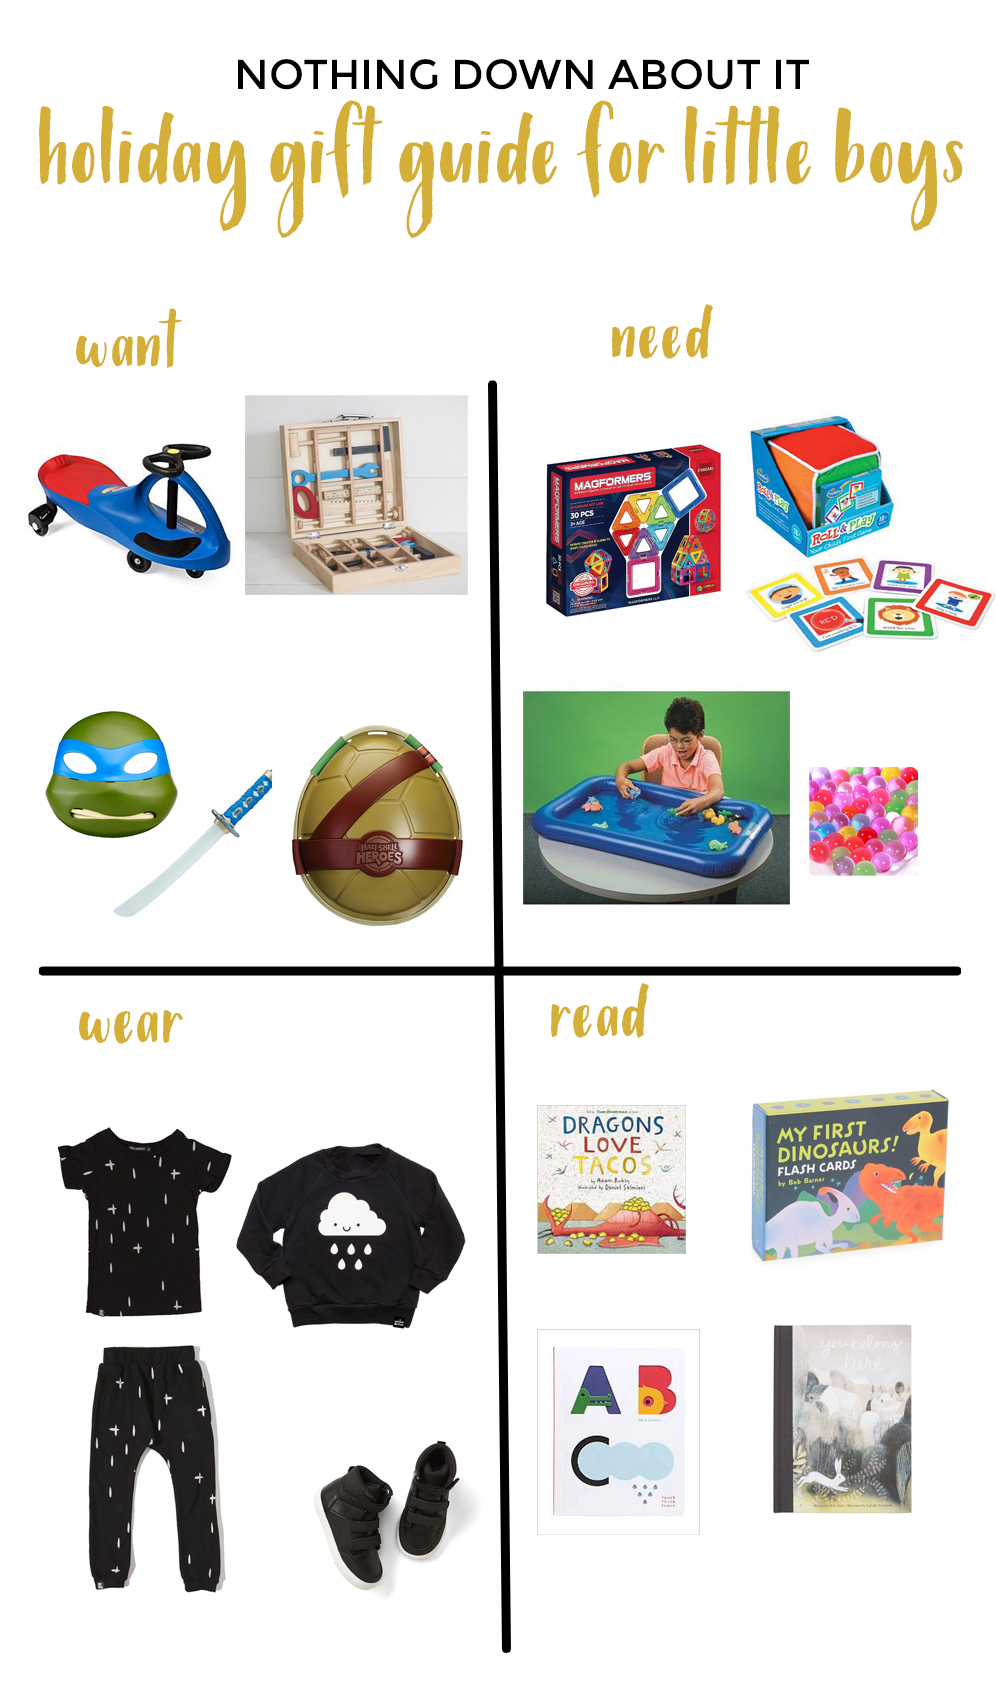 gift guide for little boys, gift guide for special needs children